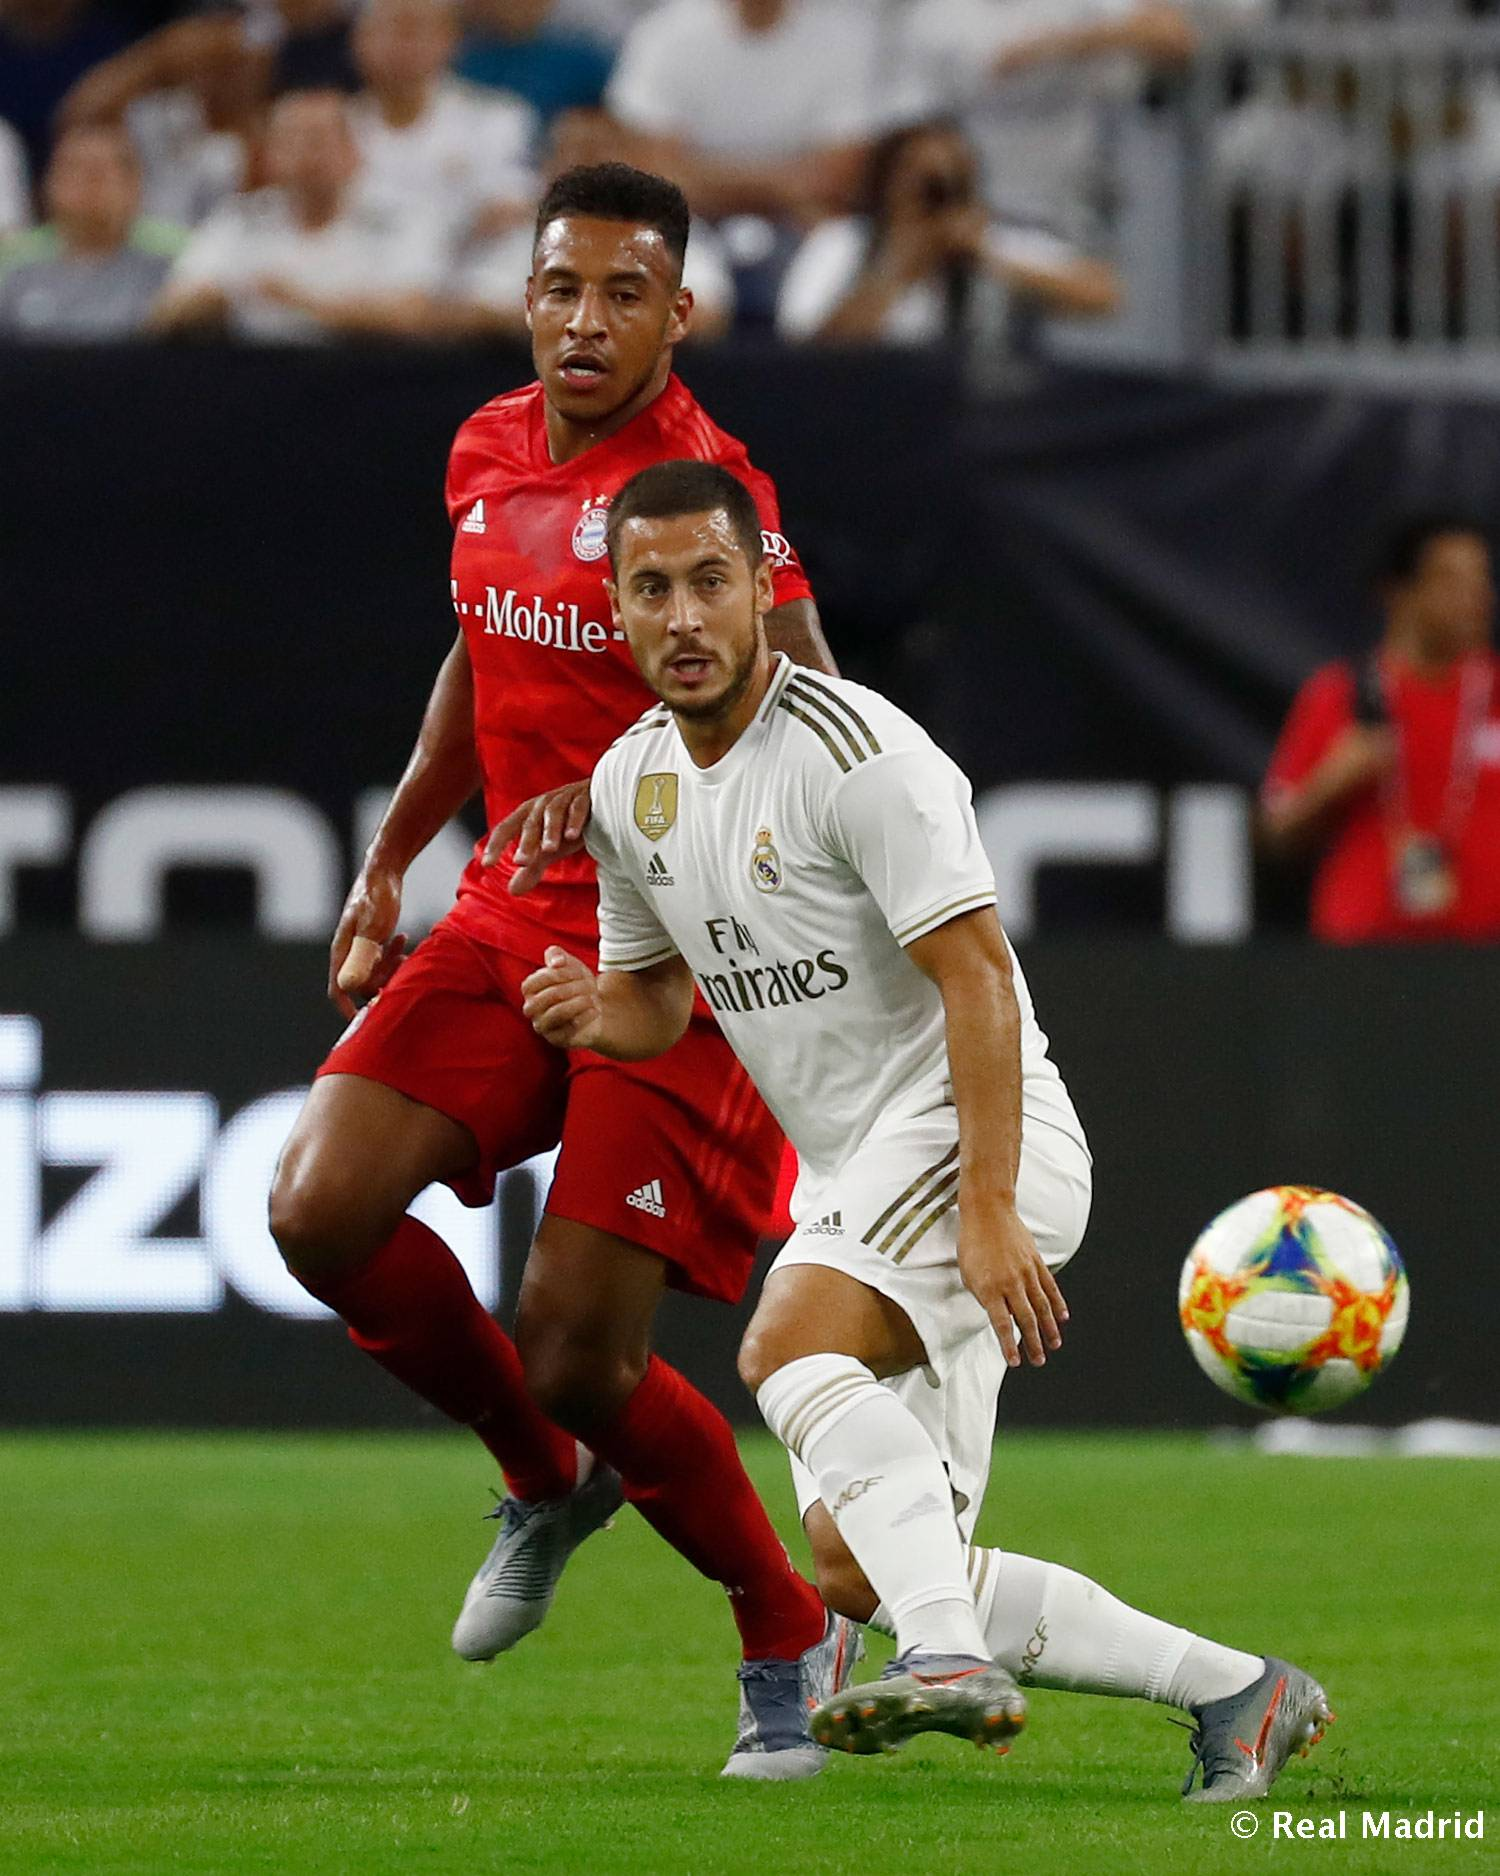 Real Madrid - Debut de Hazard con el Real Madrid - 21-07-2019